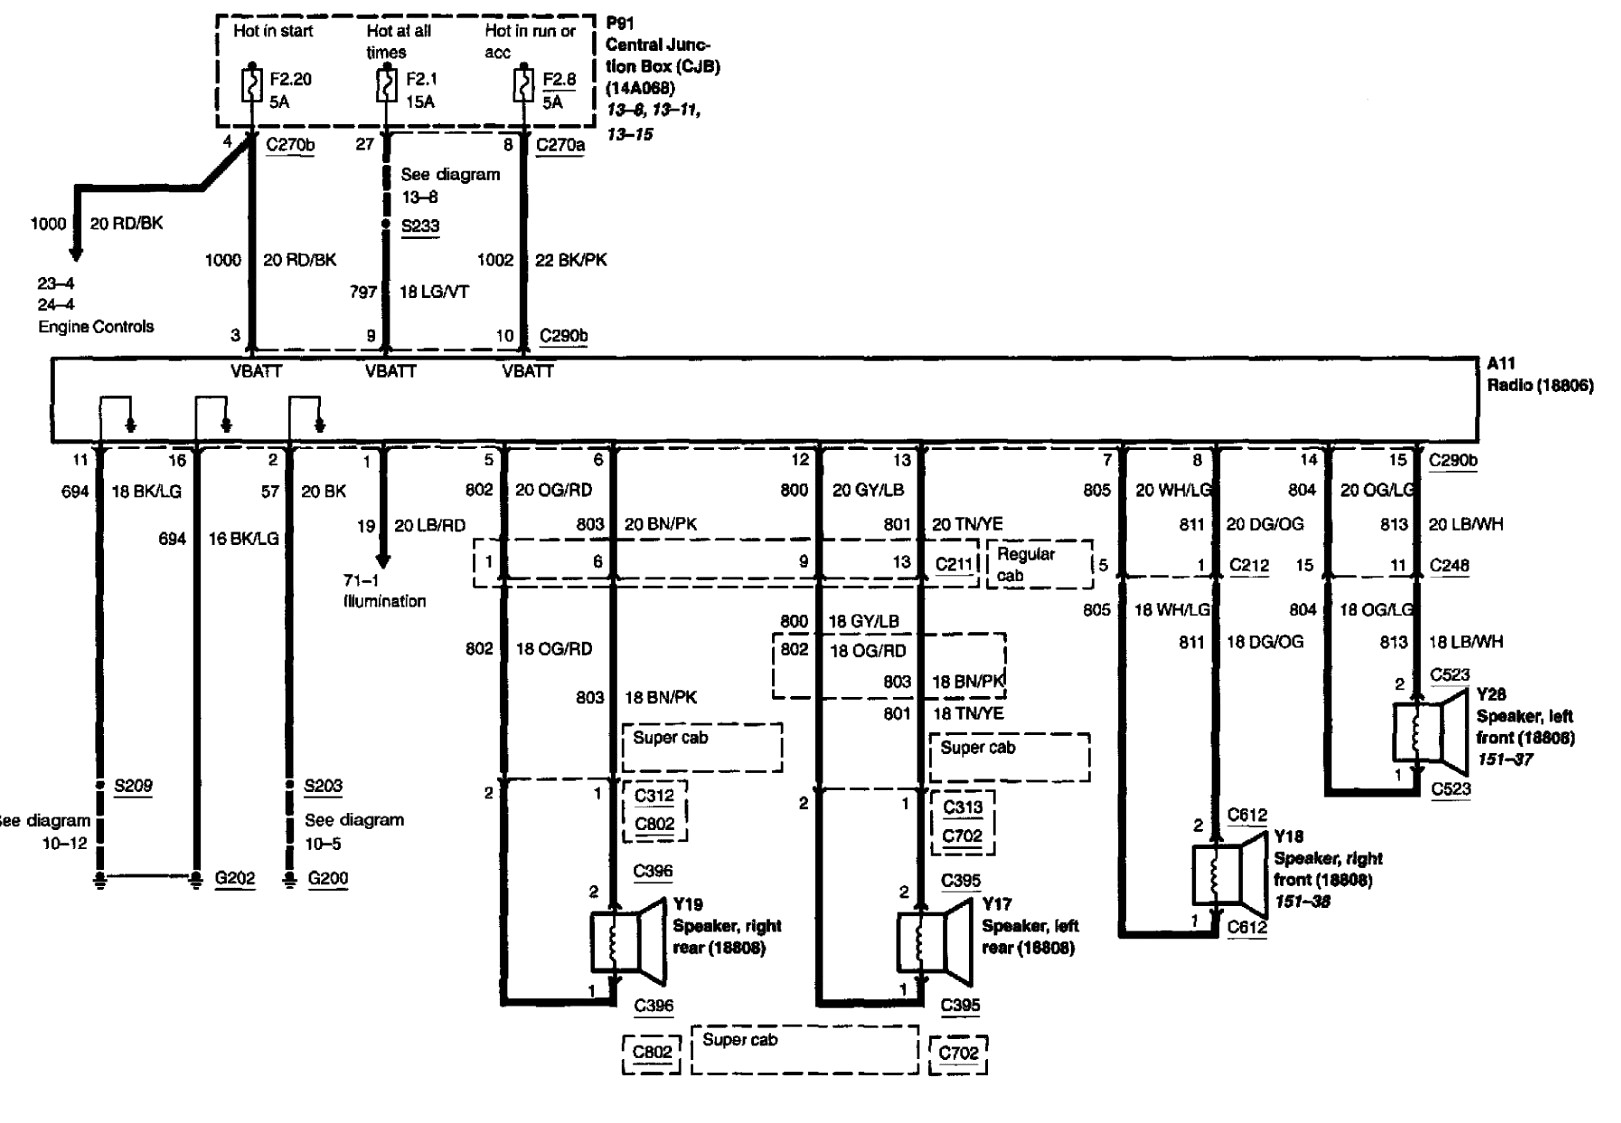 ford f150 radio wiring diagram wb 5267  2013 f 150 tow package wiring diagram 2001 ford f150 radio wiring diagram 2013 f 150 tow package wiring diagram